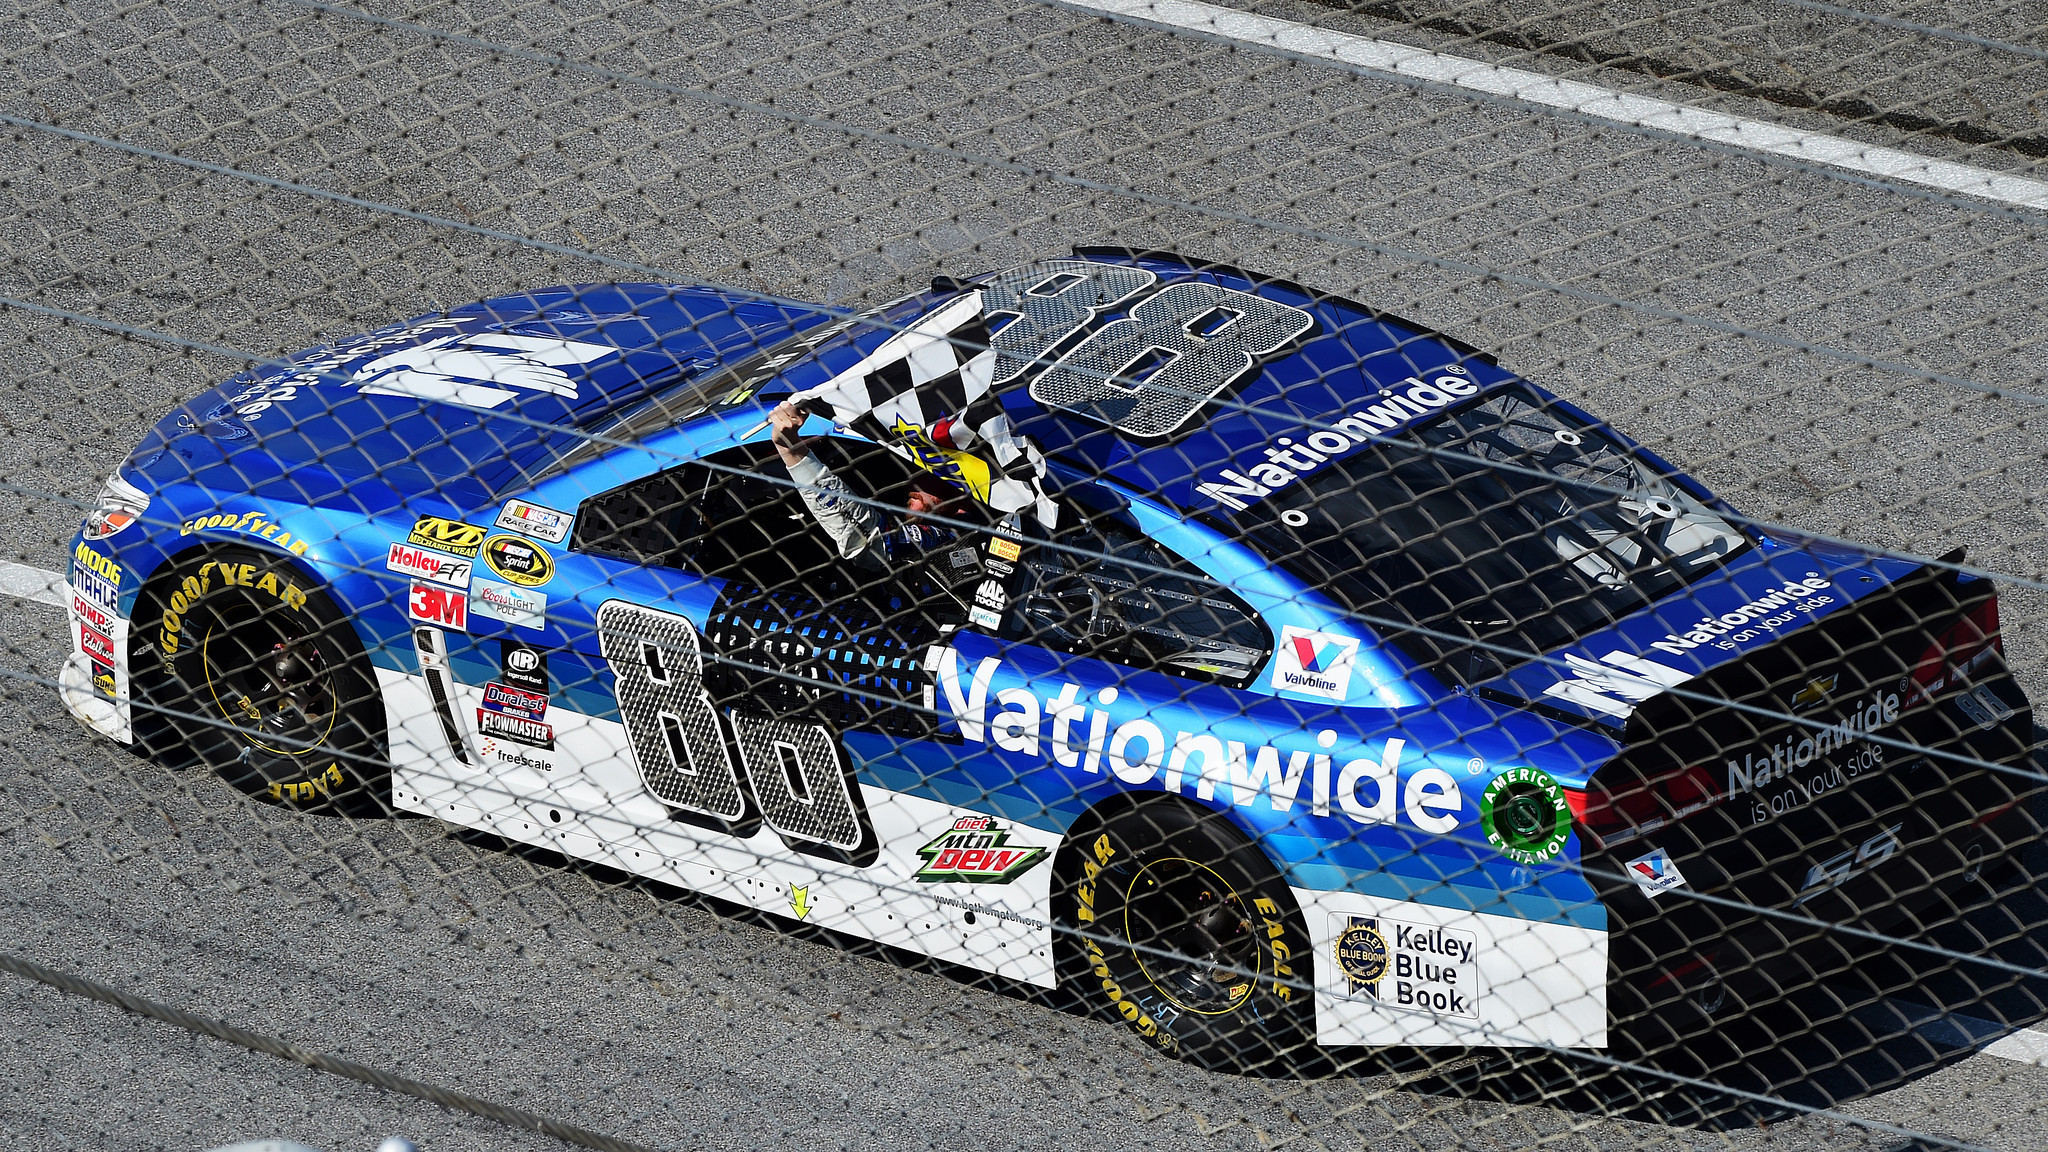 2048x1152 Dale Earnhardt Jr. cruised to his first win of the season at an old familiar